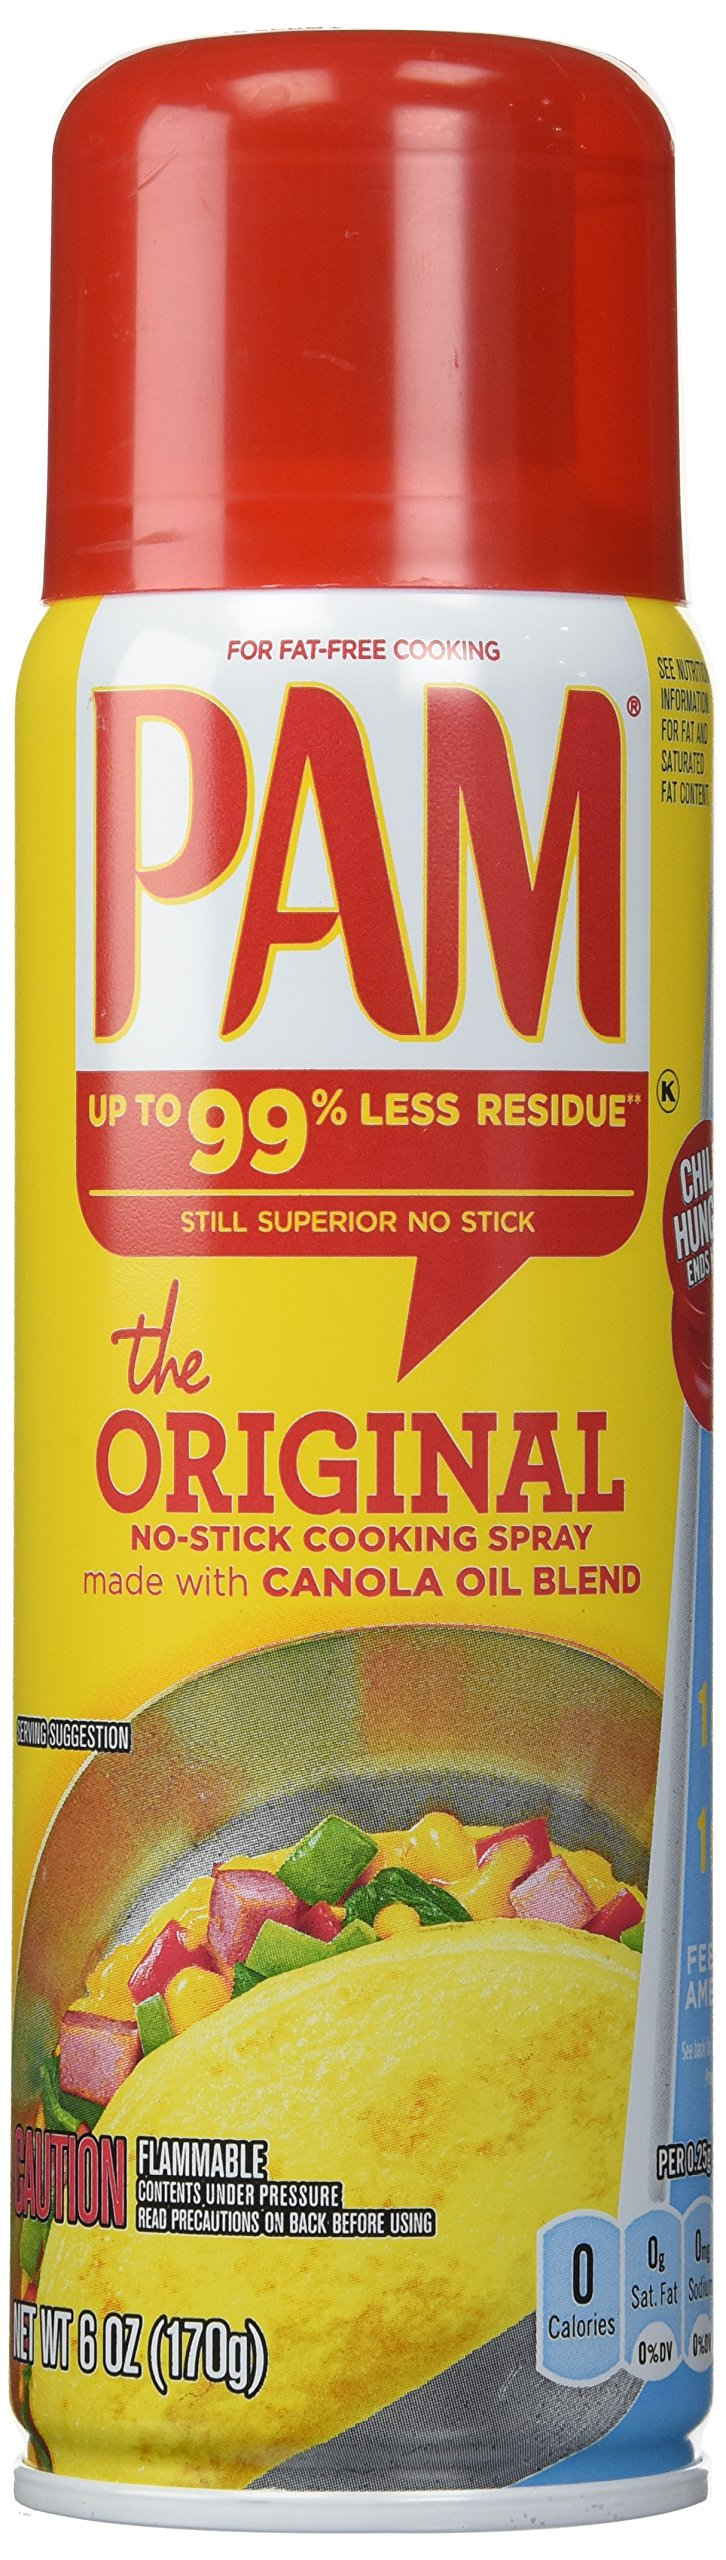 Pam No-Stick Cooking Spray - Original - Made With Canola Oil - Net Wt. 6 OZ (170 g) Each - Pack of 2